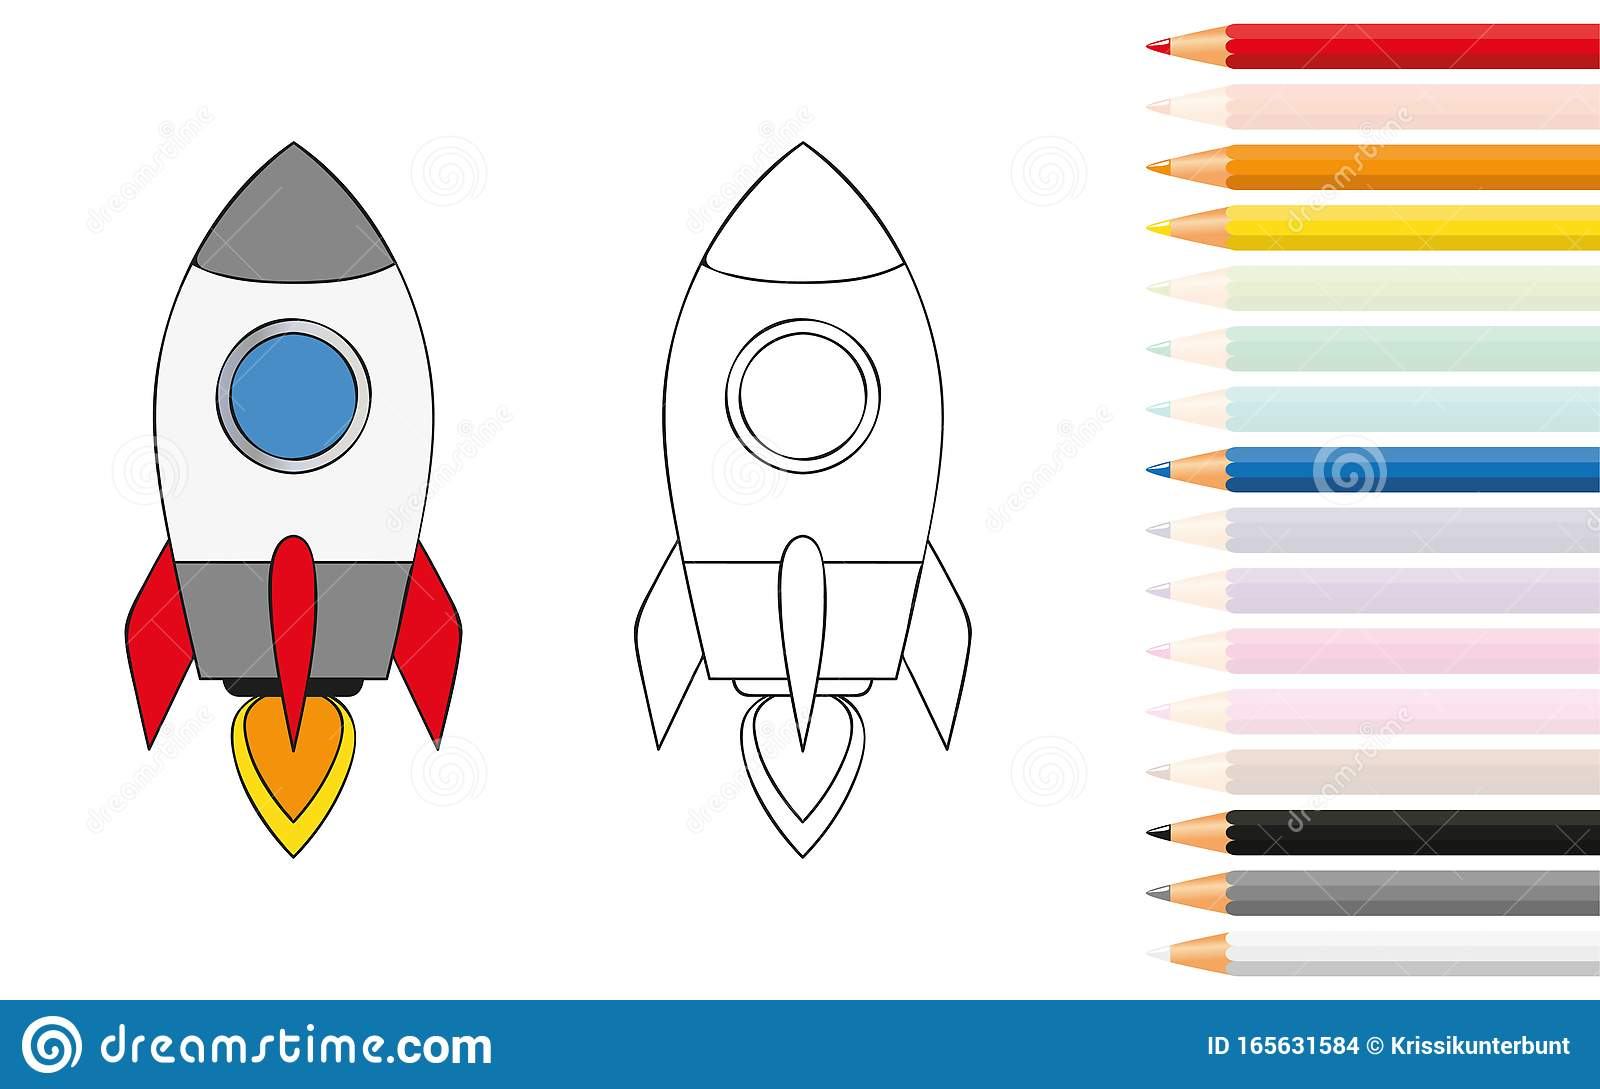 Rocket Ship Coloring Book With Pencils Stock Vector